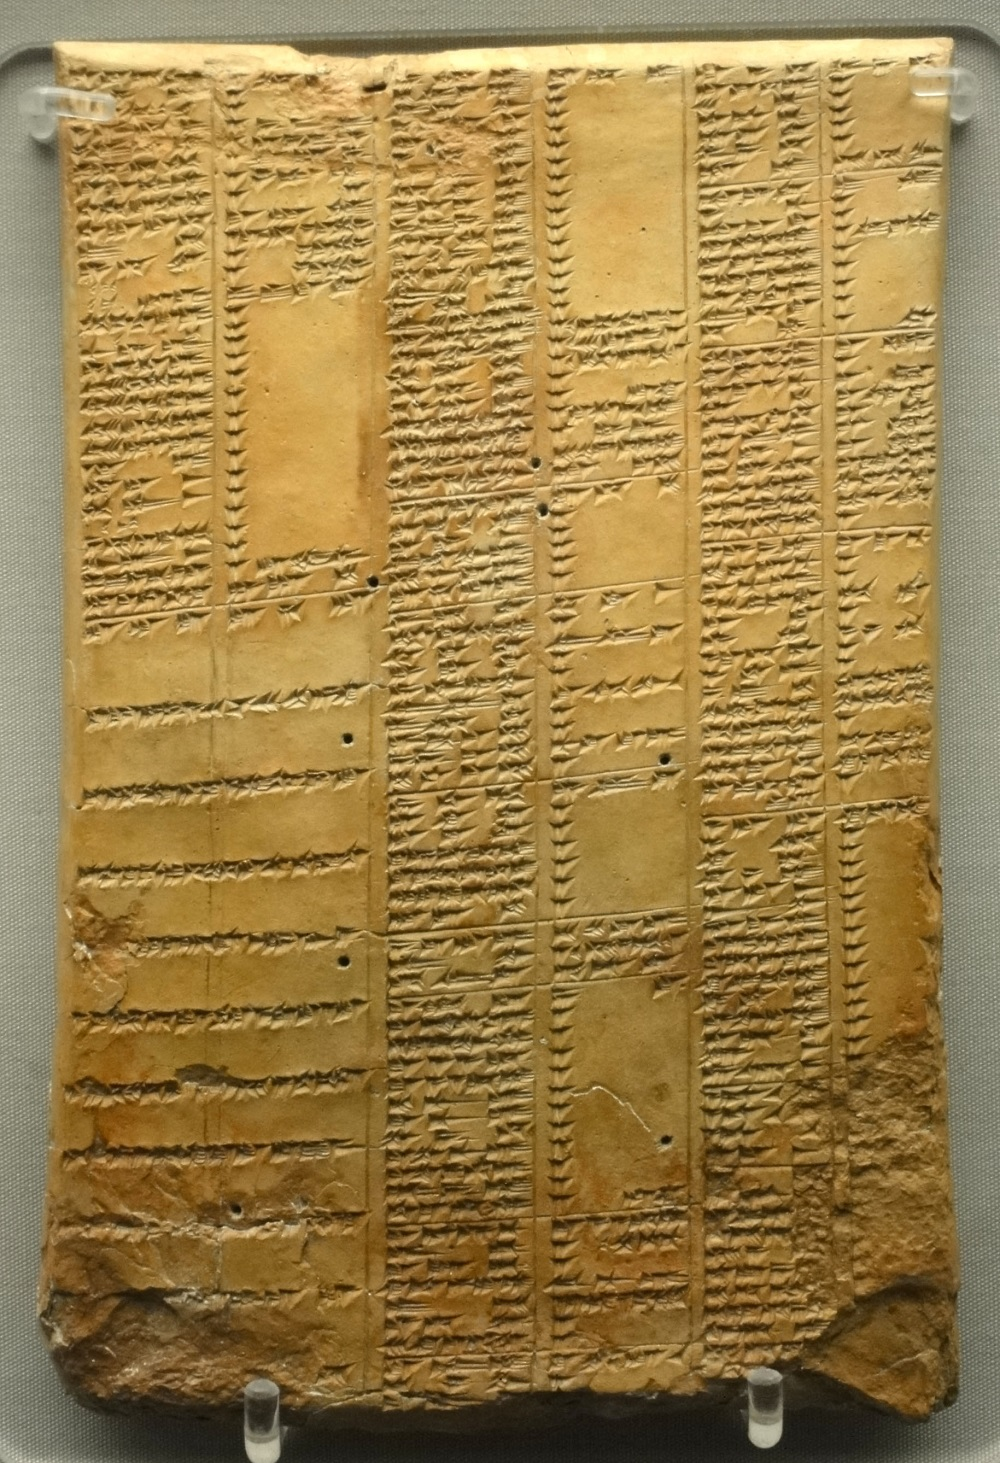 Cuneiform synonym list clay tablet from the Library of Ashurbanipal | Neo-Assyrian (934-608BCE), currently on display in the British Museum |  Image Source